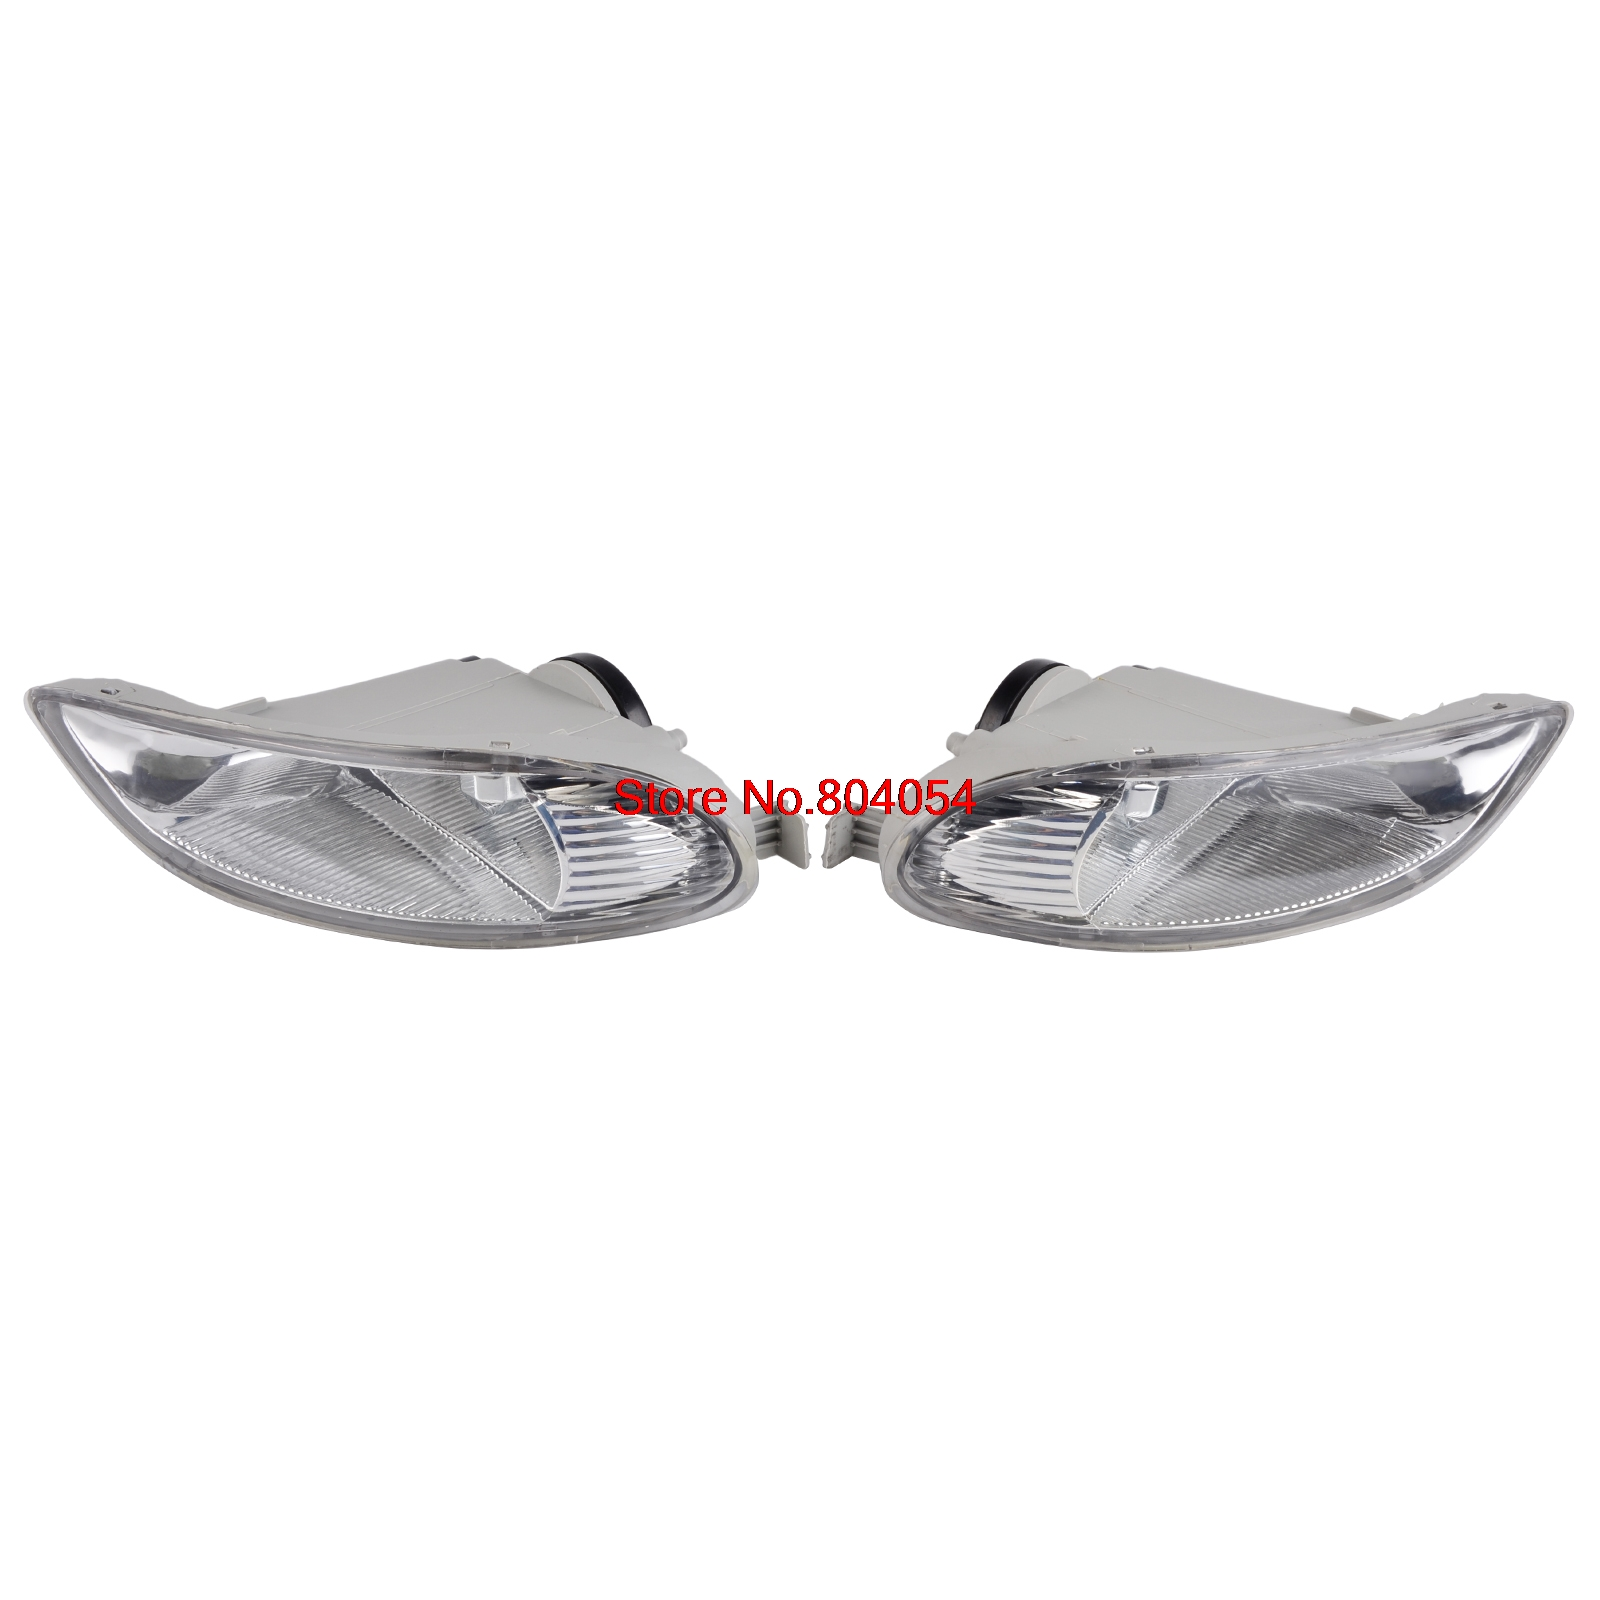 NICECNC A Pair Car Bumper Fog Lights Front Lamps Left & Right For Toyota Corolla 2005-2008 Camry 2002-2004 Solara 2002 2003 2 pcs set car styling front bumper light fog lamps for toyota avensis 2003 2009 fog lights left right 81210 06052